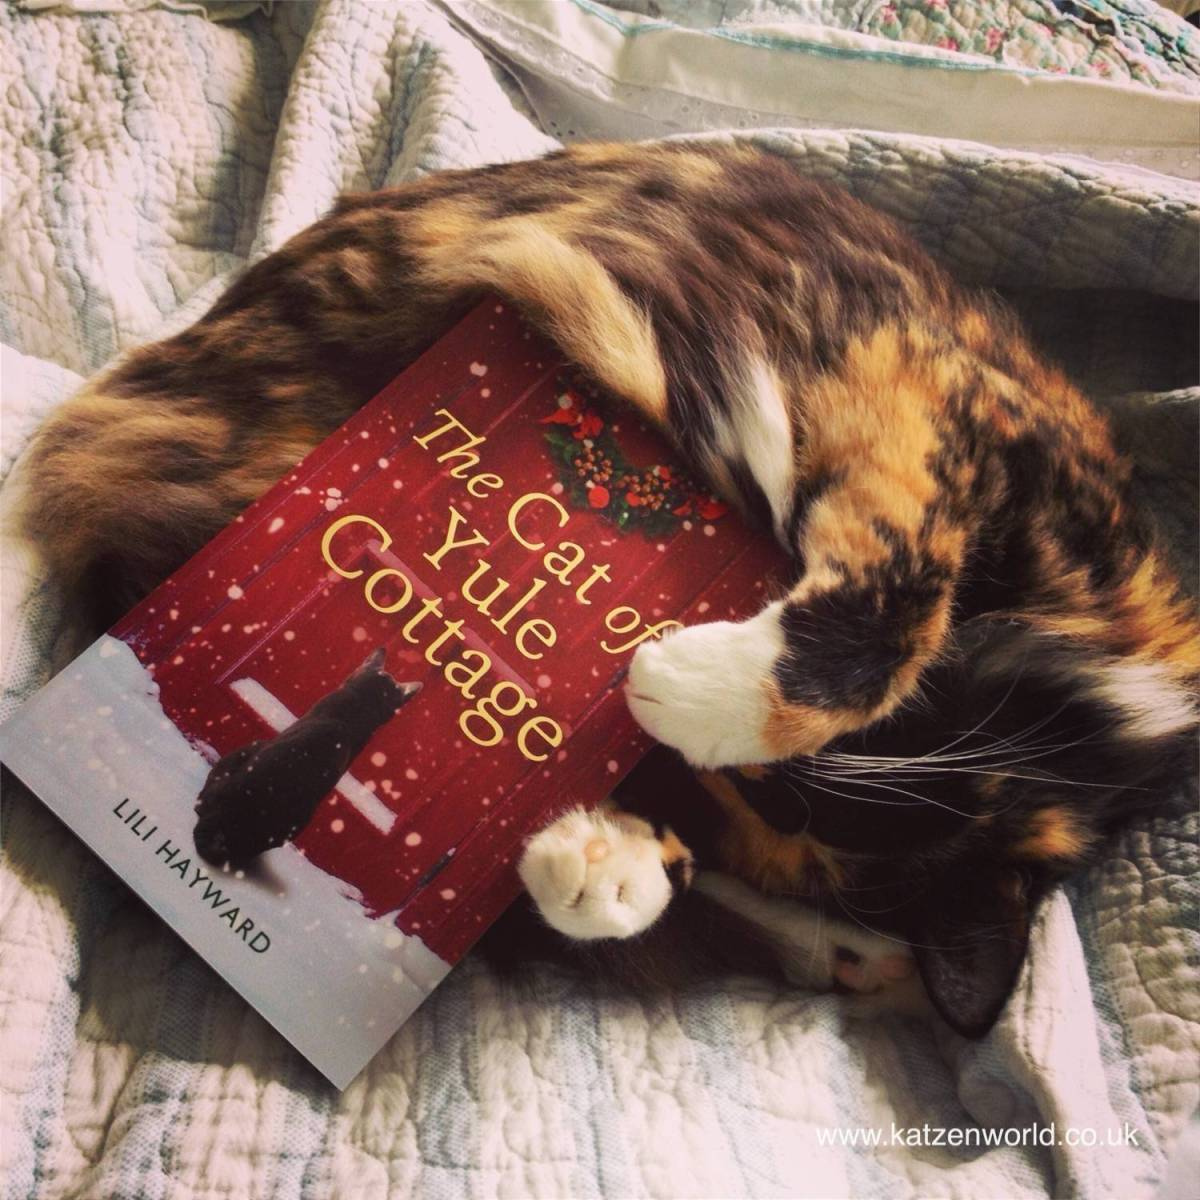 Worldwide Giveaway: The Cat of Yule Cottage